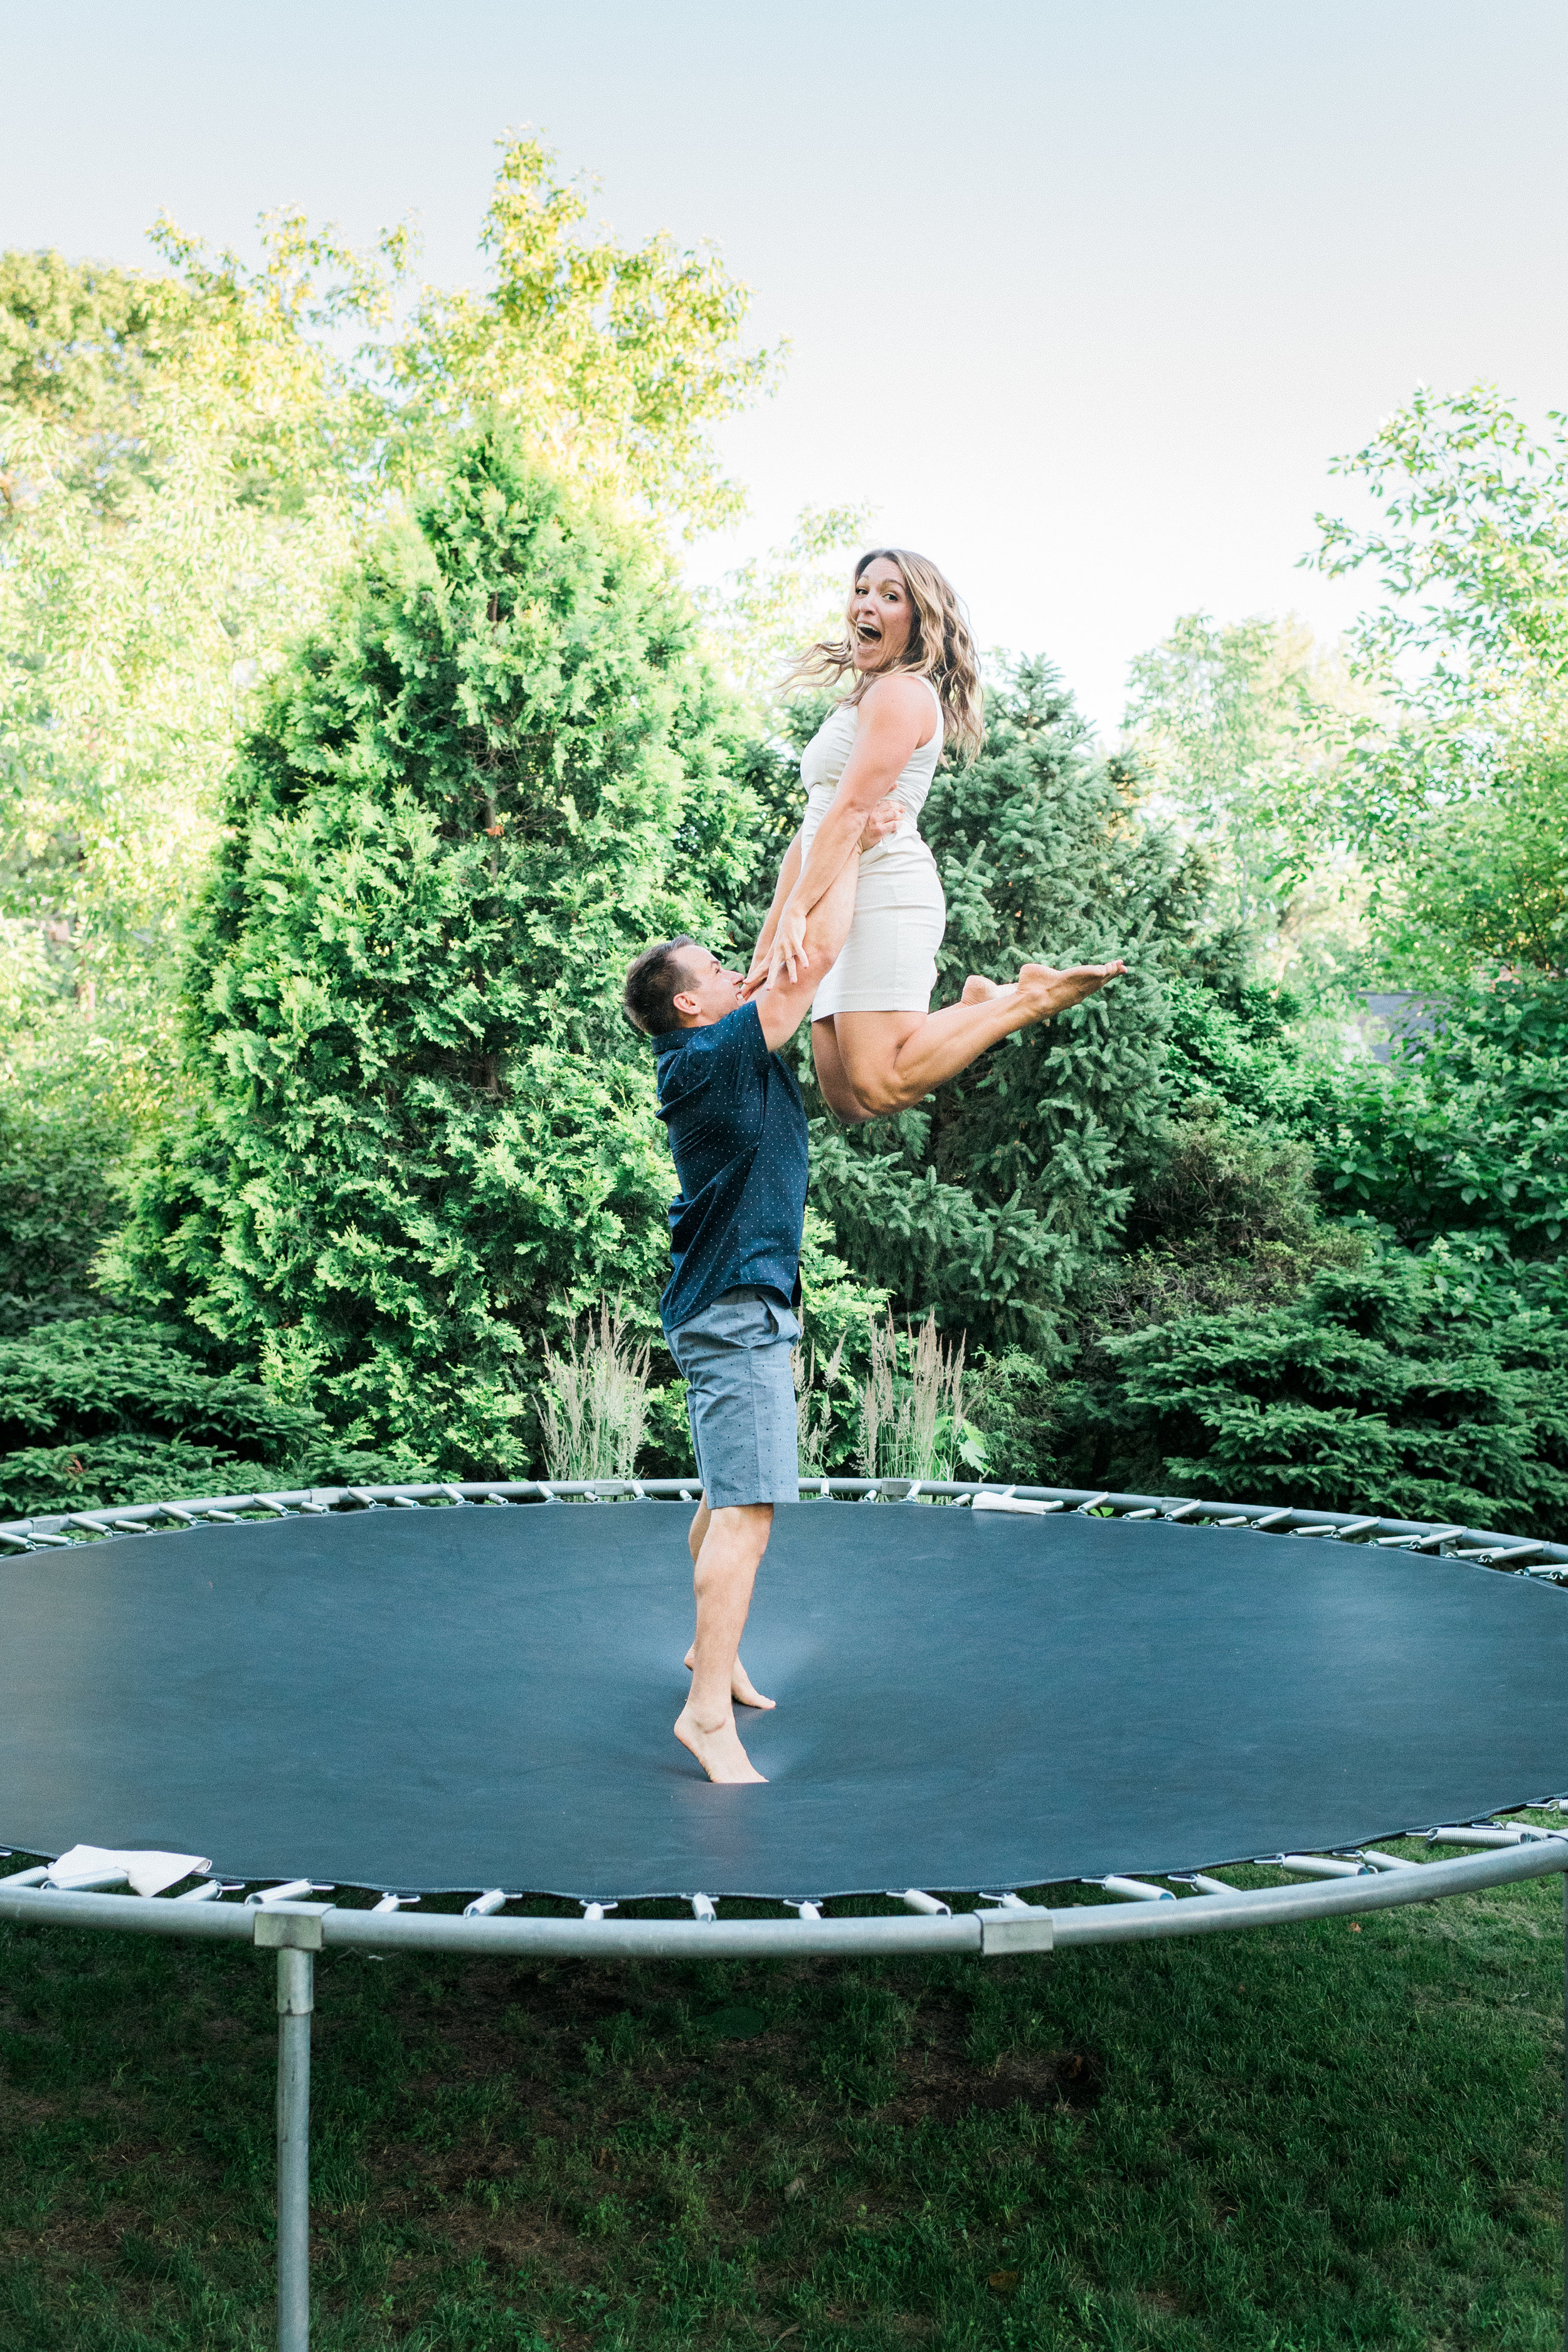 Man on a trampoline lifts his fiancé in the air.